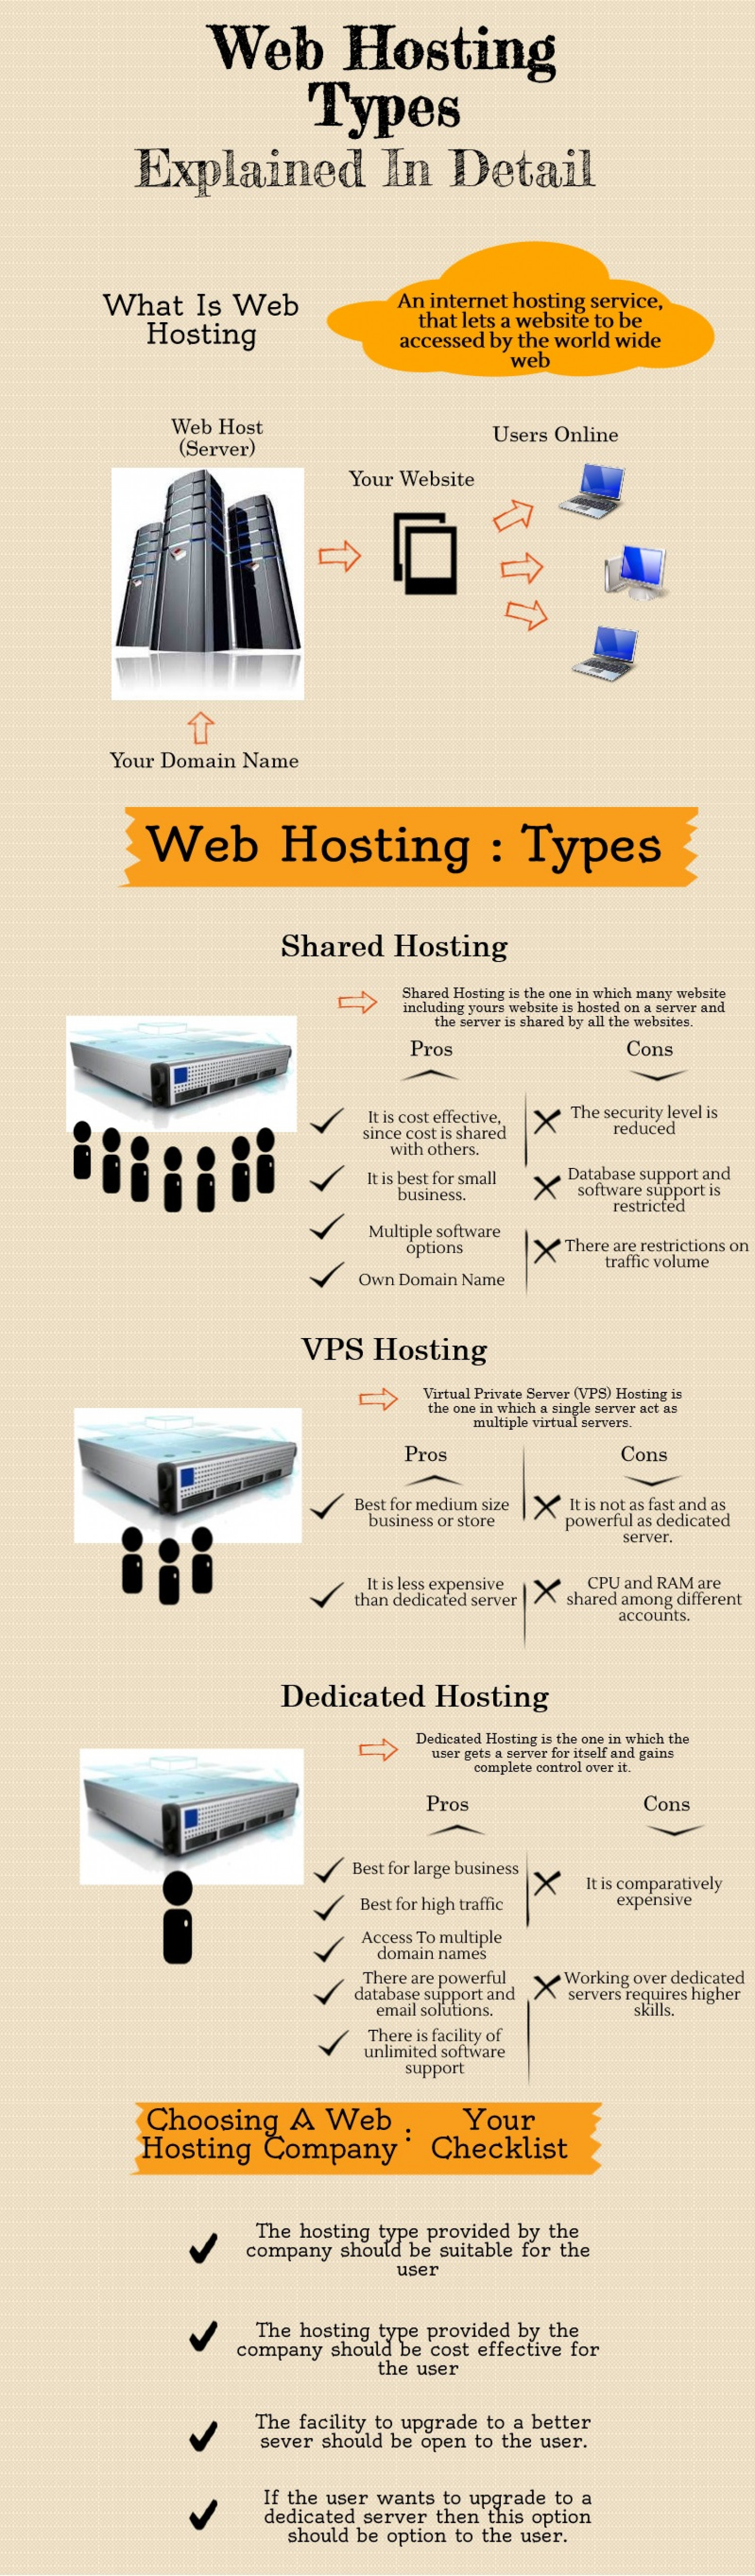 Web Hosting Types: Explained In Detail Infographic